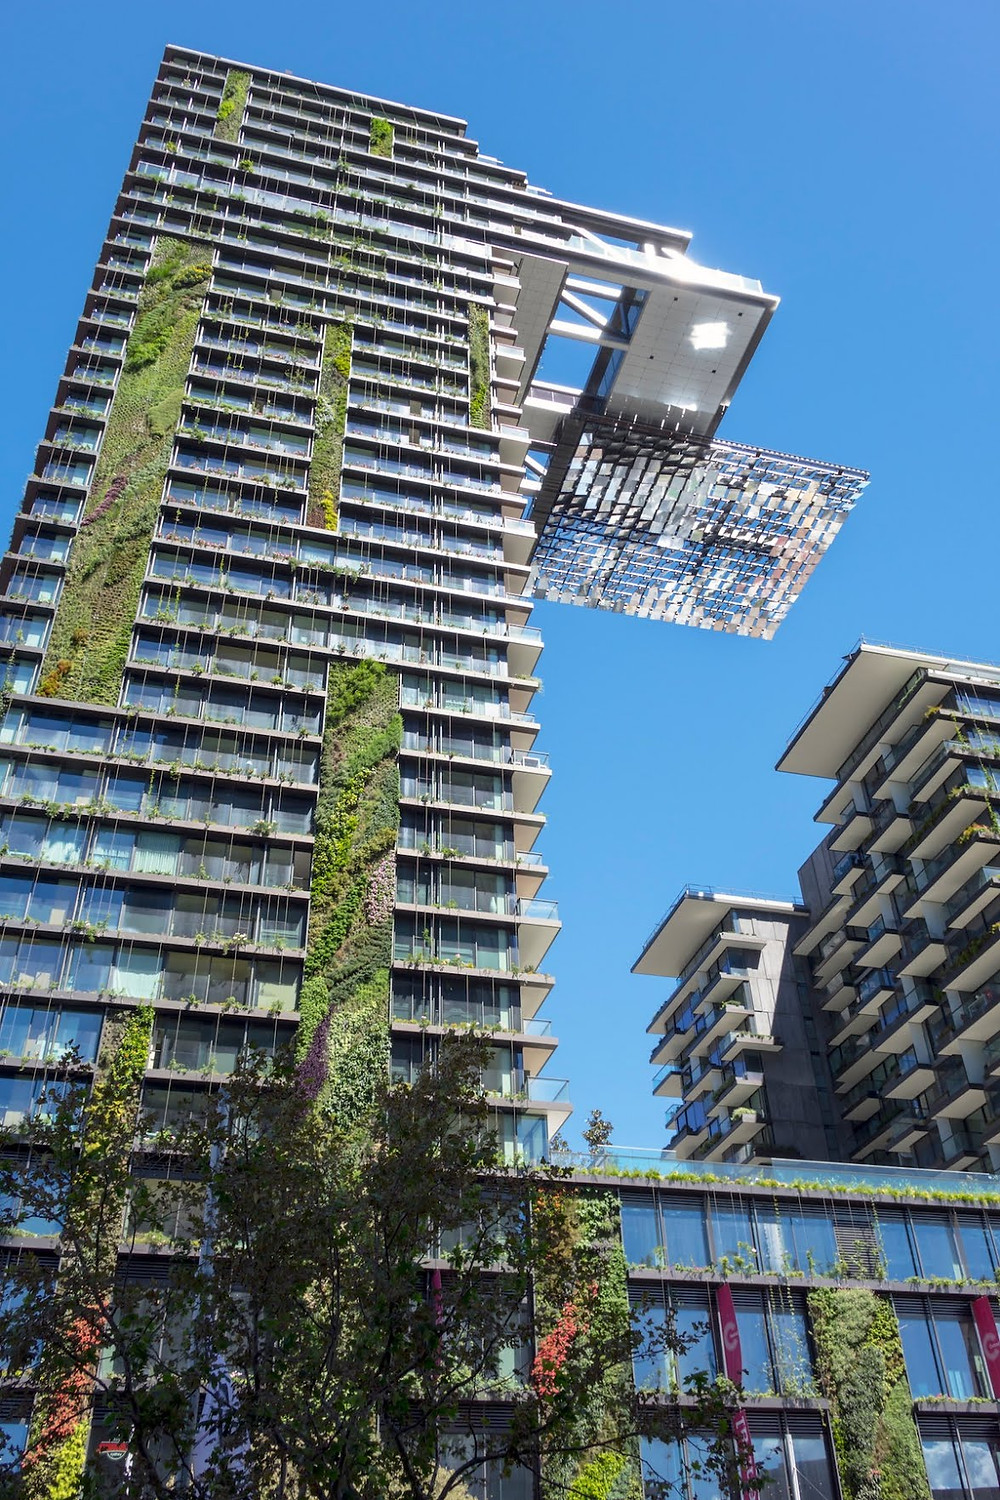 Designed by the Pritzker Prize–winning architect Jean Nouvel, Sydney's One Central Park is as bold as it is eco-friendly. The structure is covered in 35 different species of plants, effectively trapping carbon dioxide, emitting oxygen, and providing energy-saving shade.